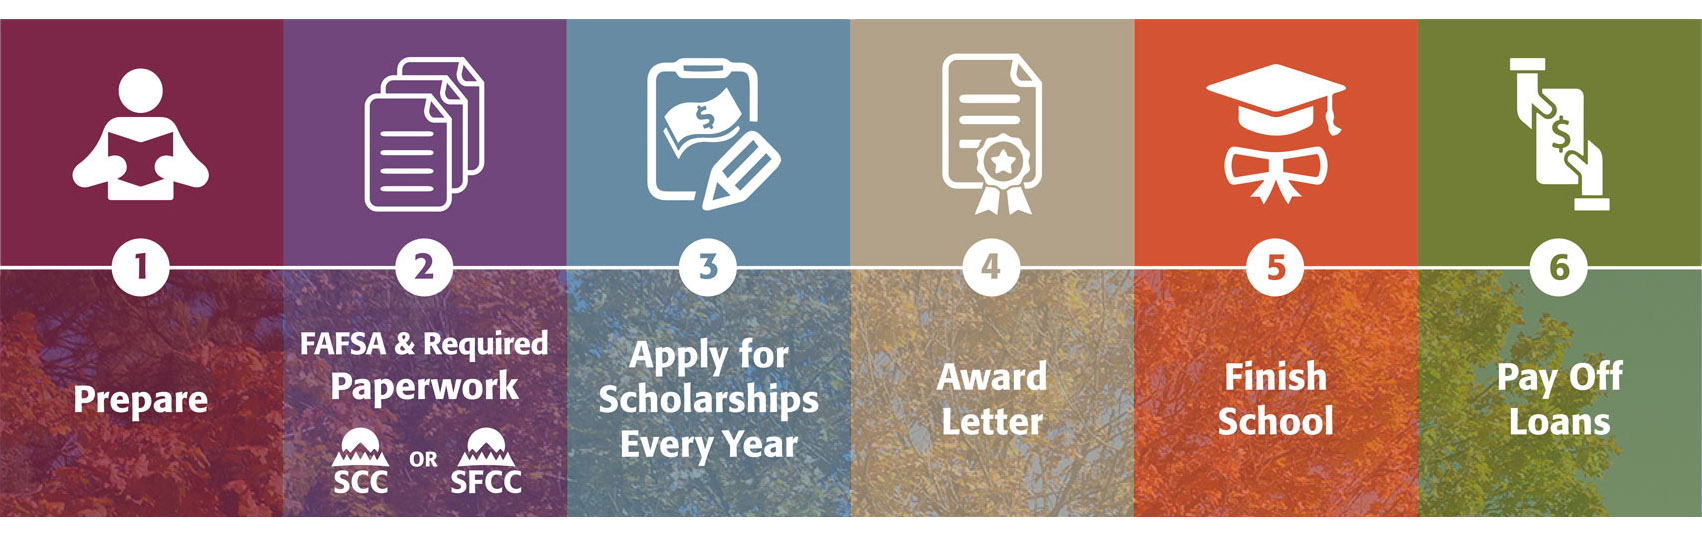 Six steps to complete your financial aid: Step 1 = Prepare, Step 2 = FAFSA & Required Paperwork, Step 3 = Apply for Scholarships Every Year, Step 4 = Award Letter, Step 5 = Finish School, Step 6 =  Pay Off Loans